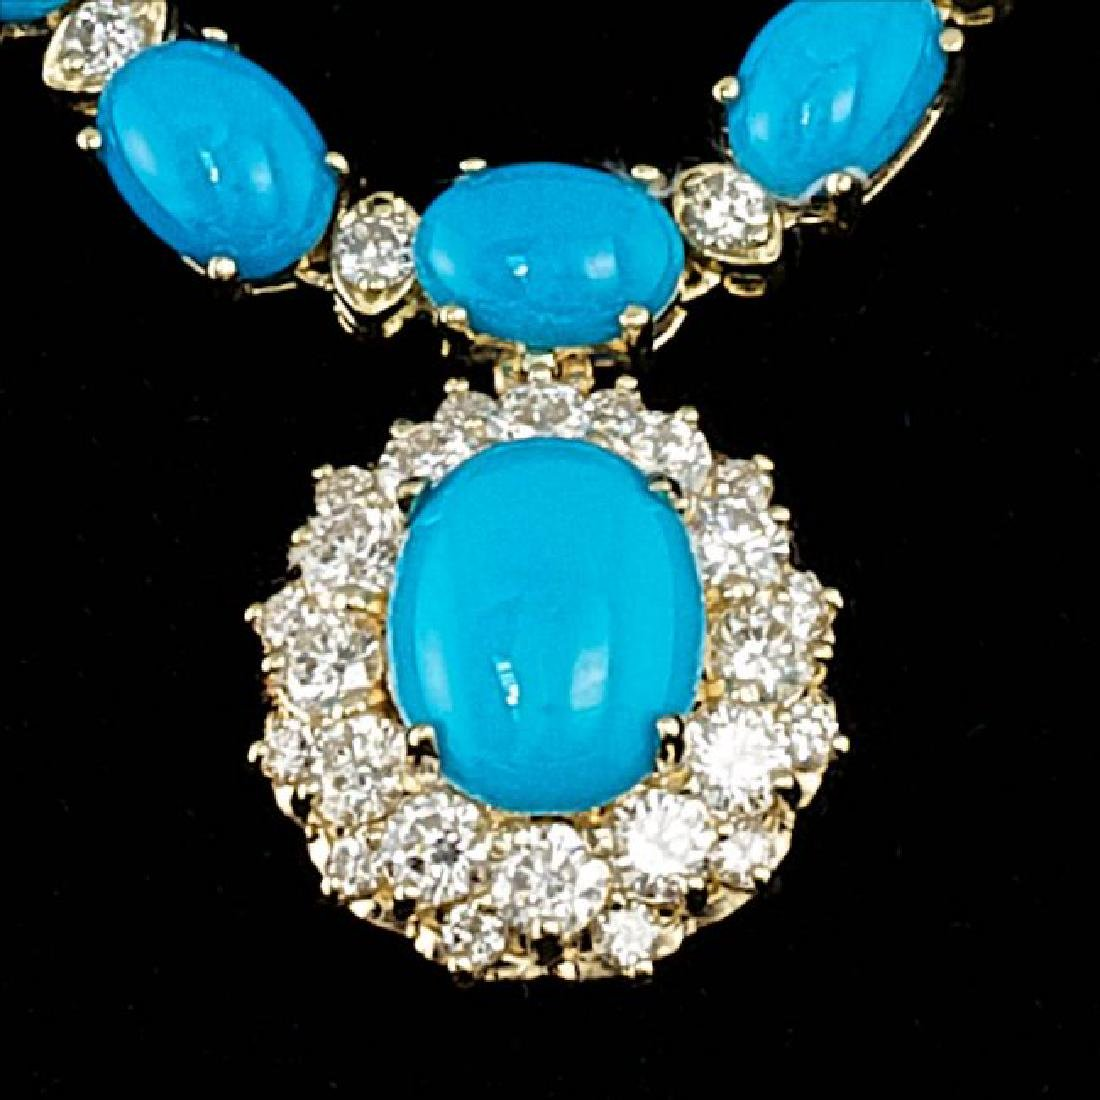 14k Gold 35.5ct Turquoise 3.50ct Diamond Necklace - 2